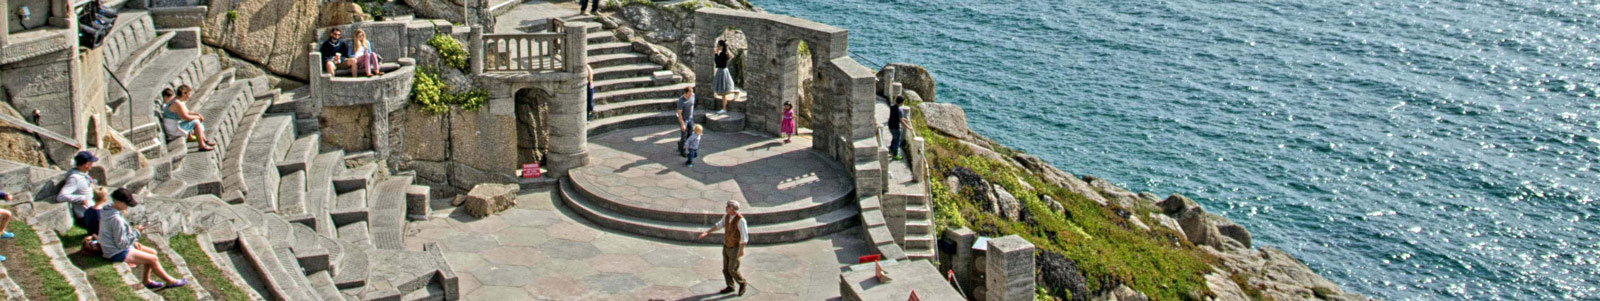 Things to do in Cornwall: Visit Minack Theatre Cornwall